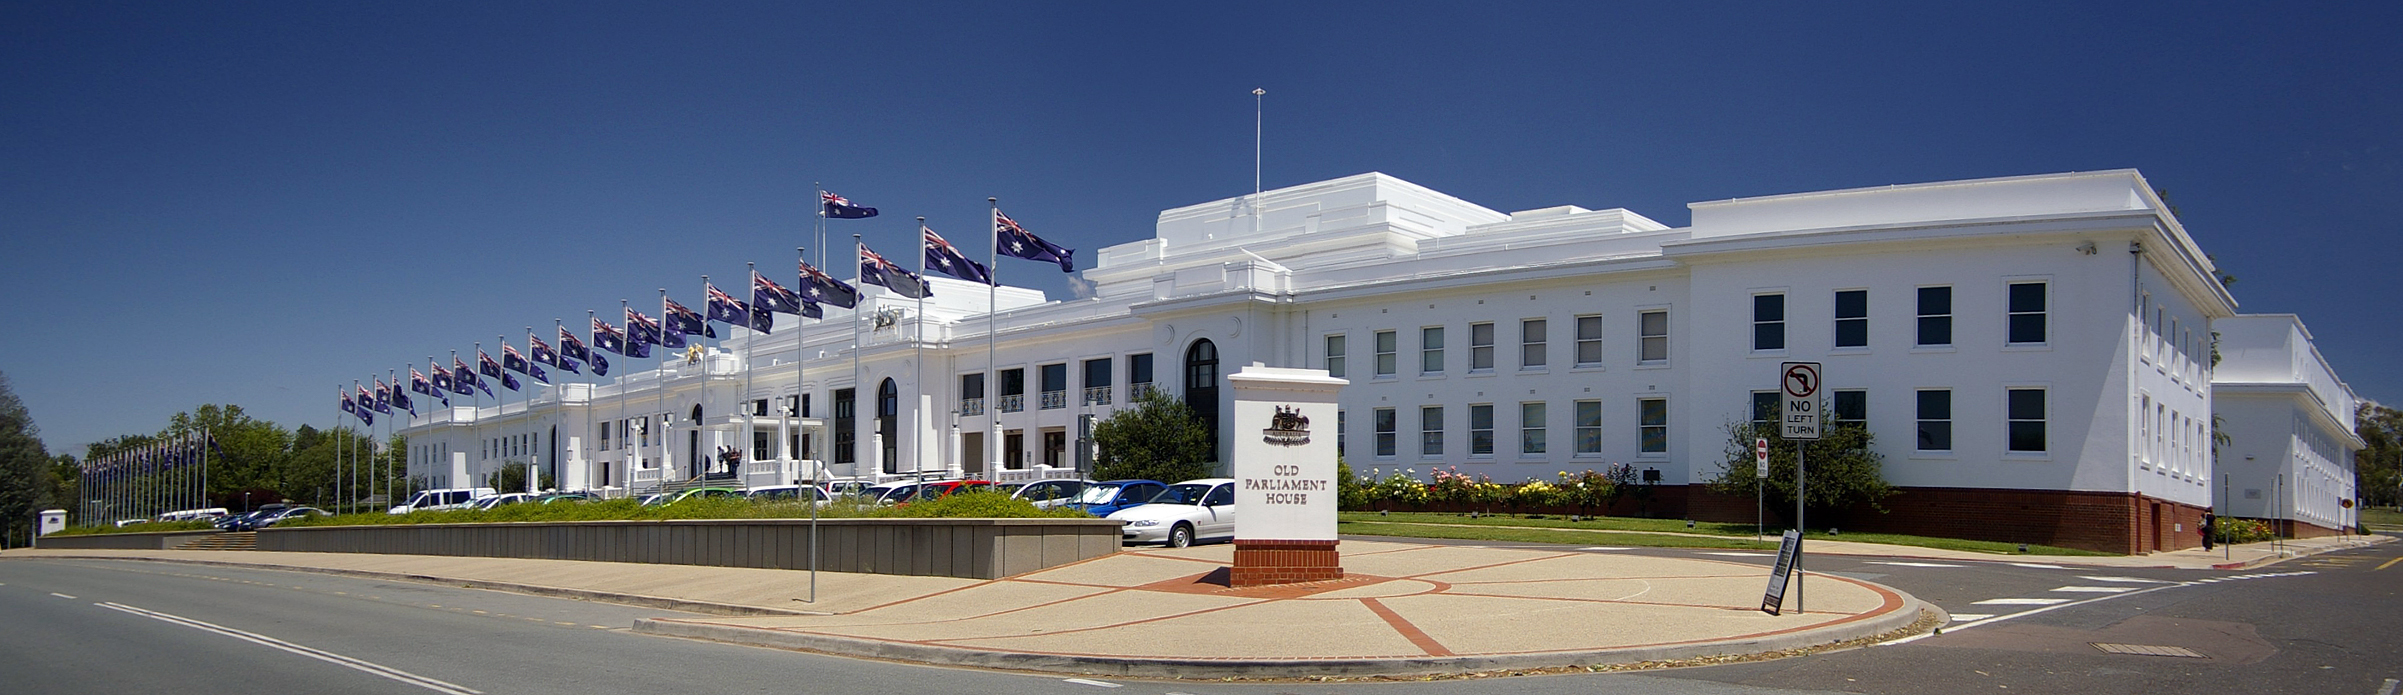 Old Parliament House din Canberra11